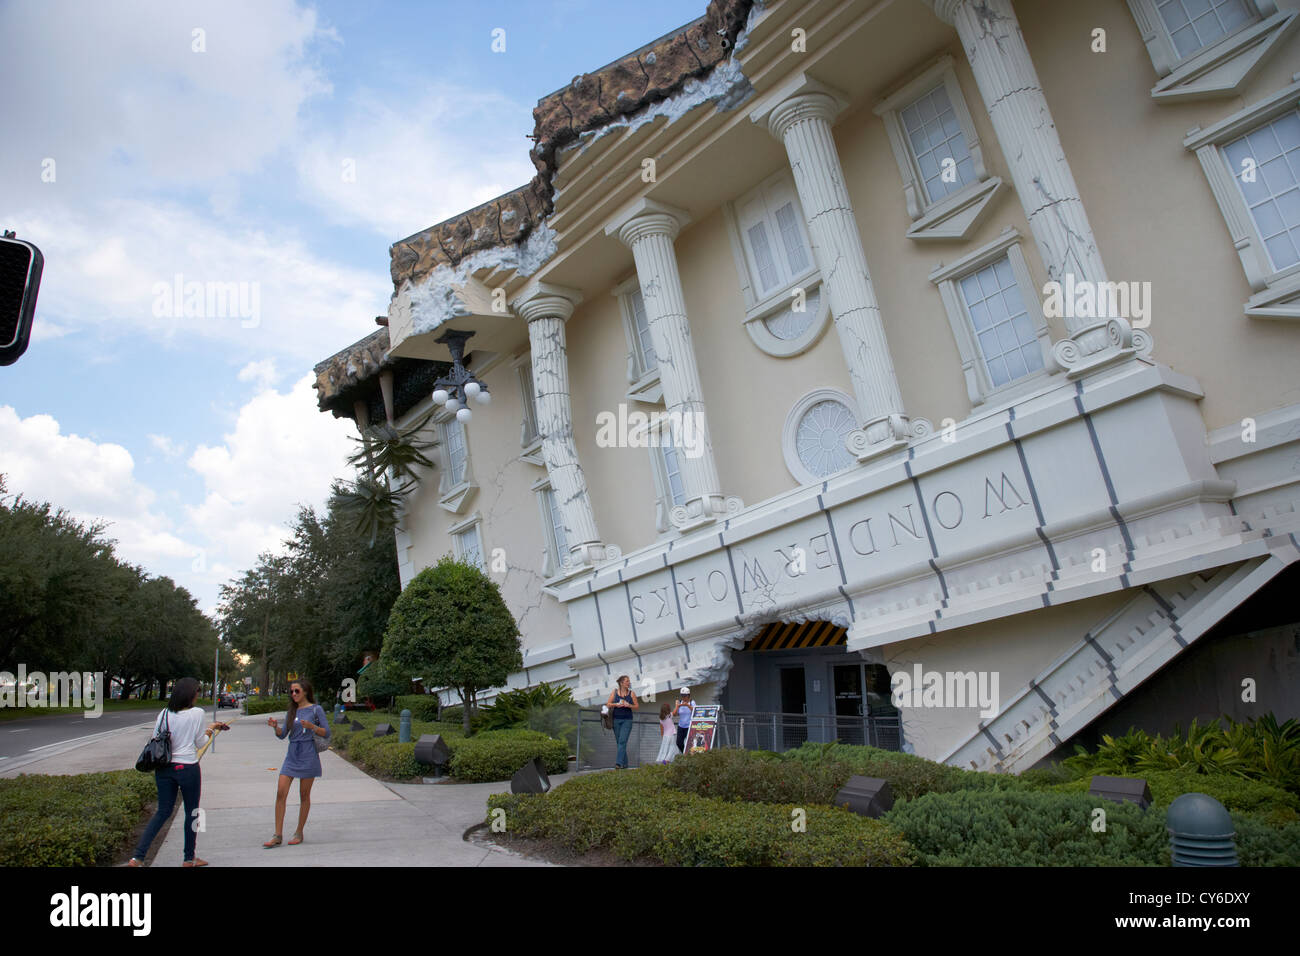 wonderworks tourist attraction on international drive orlando florida usa - Stock Image